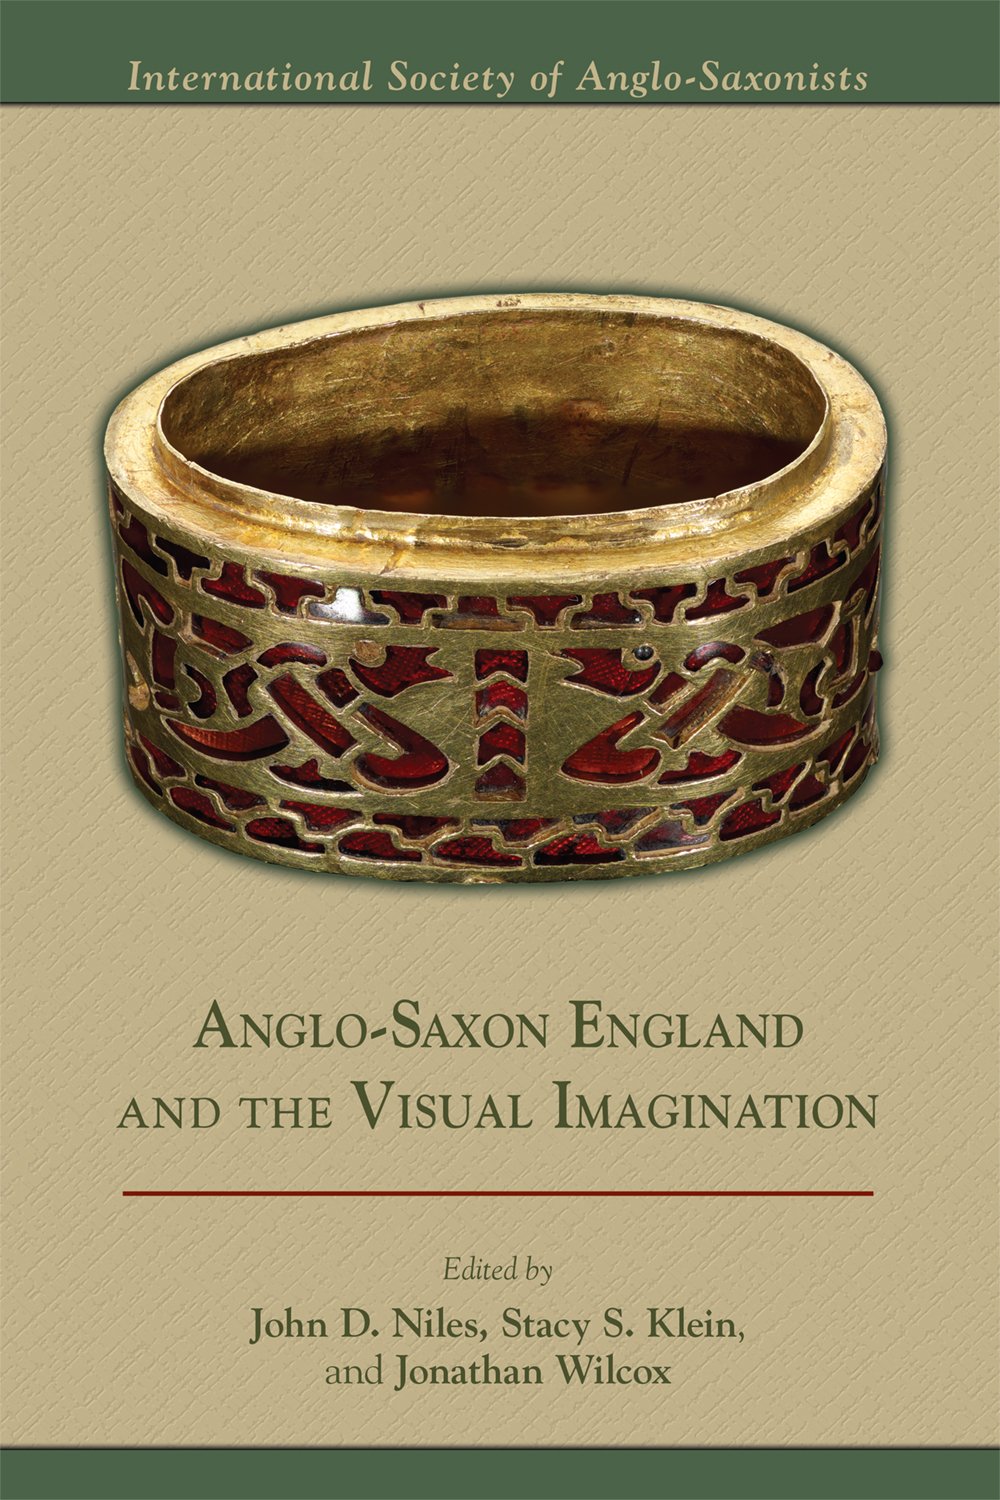 Anglo-Saxon England and the Visual Imagination